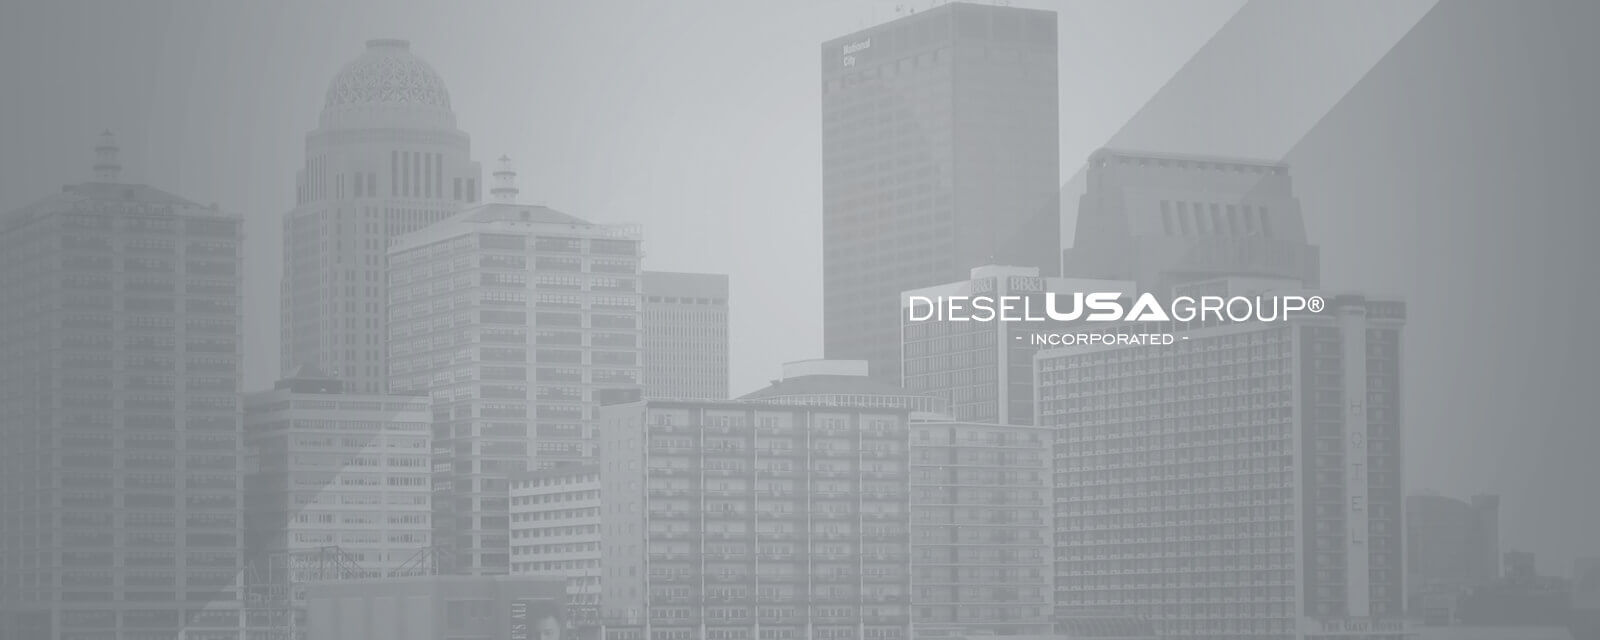 Diesel USA Group, Inc. Locations, Diesel Parts and Service